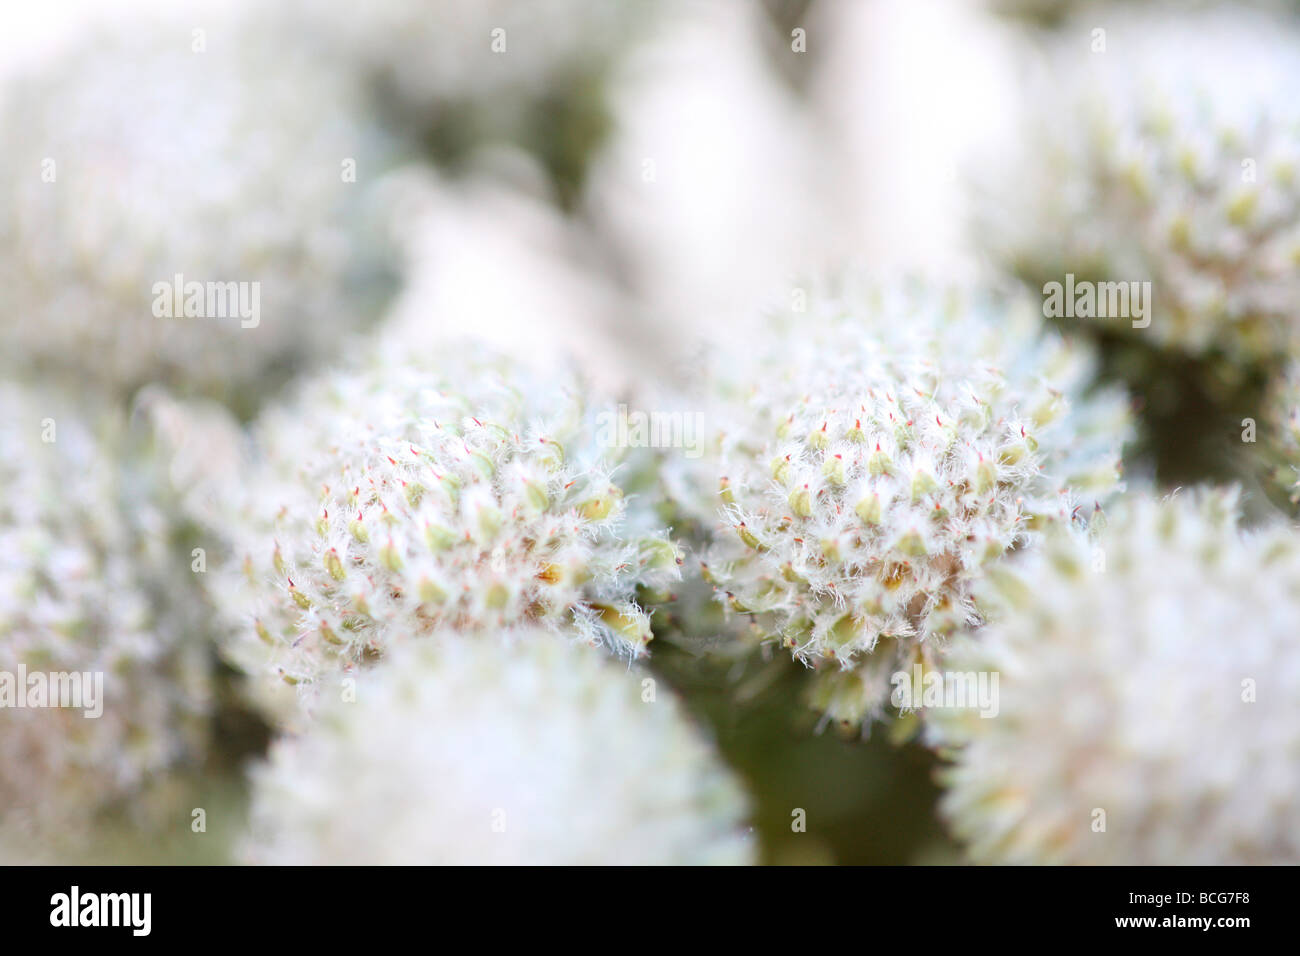 beautiful full frame image of Brunia flower heads fine art photography Jane Ann Butler Photography JABP425 - Stock Image